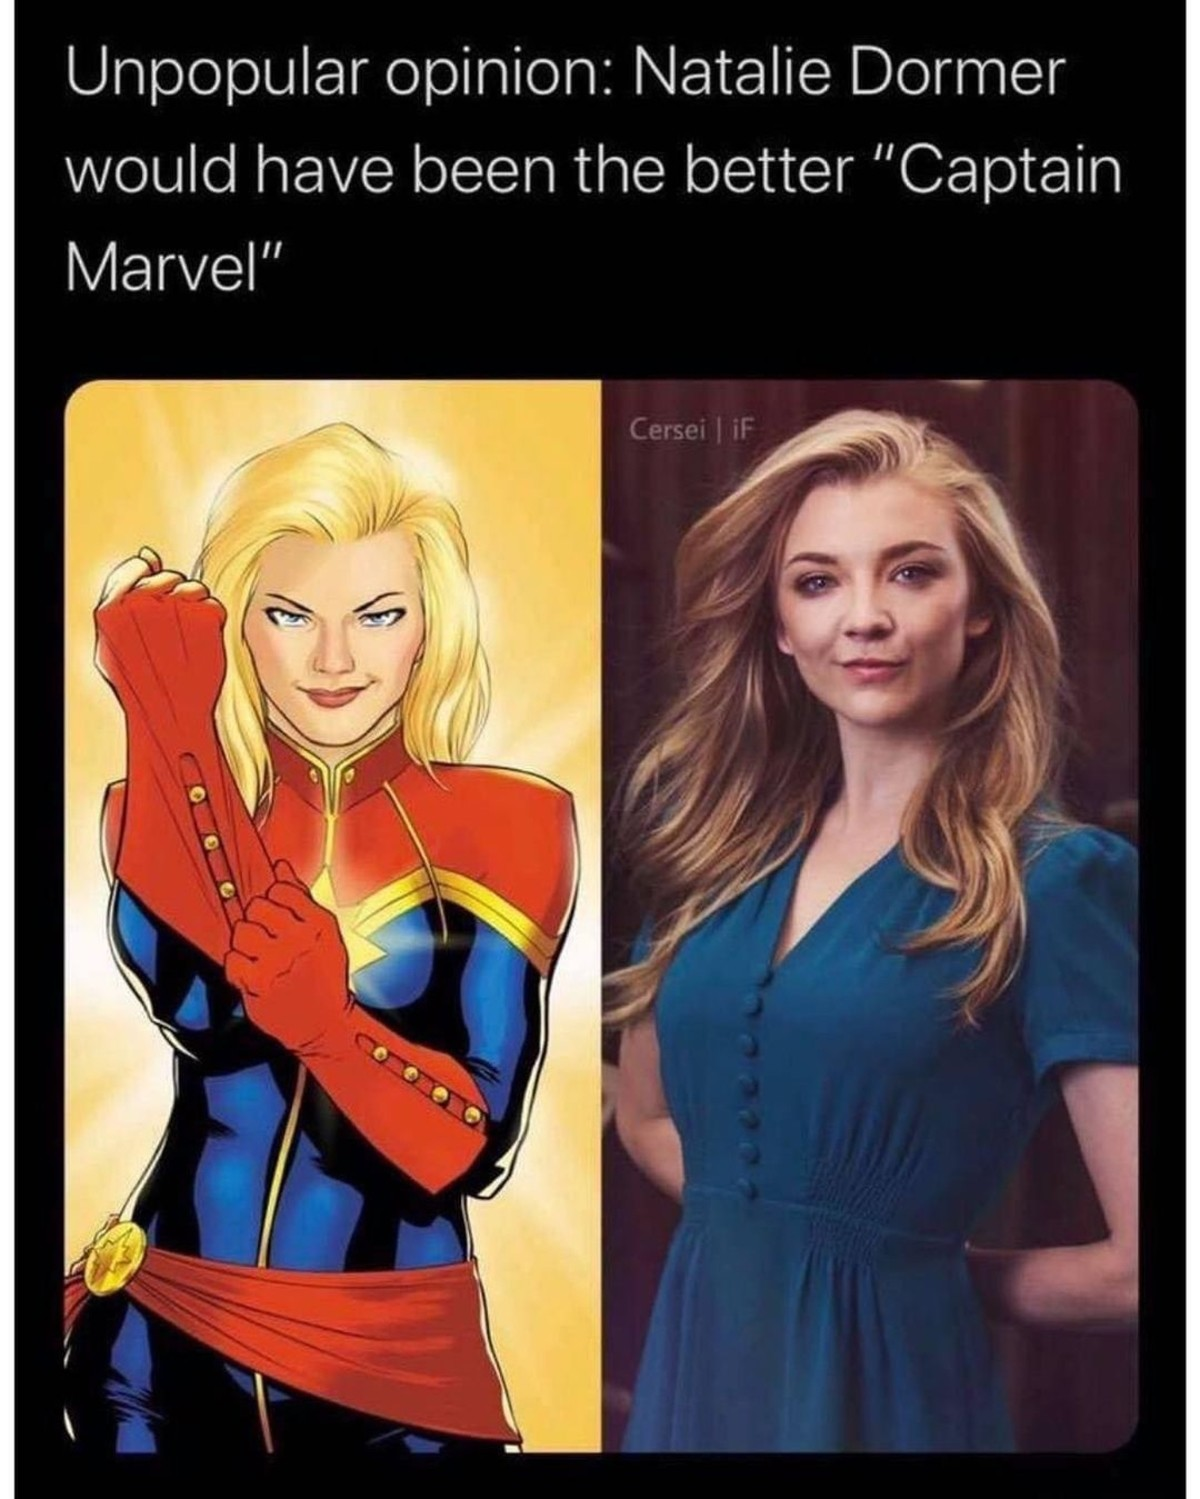 Boing.. .. I dunno, while I dislike Ms Marvels current actress, I think a lot of her character was also just written poorly. I dunno.